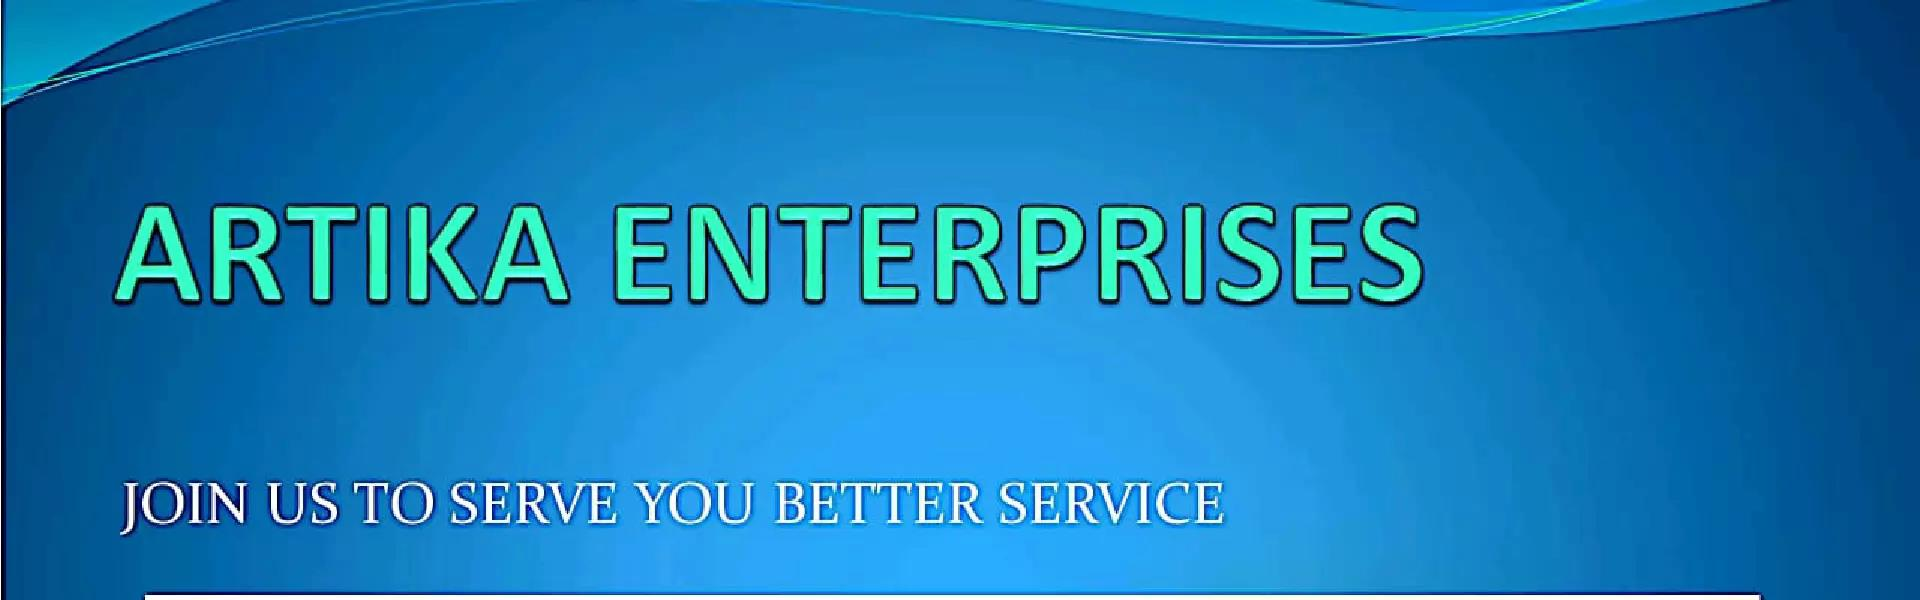 ARTIKA ENTERPRISES